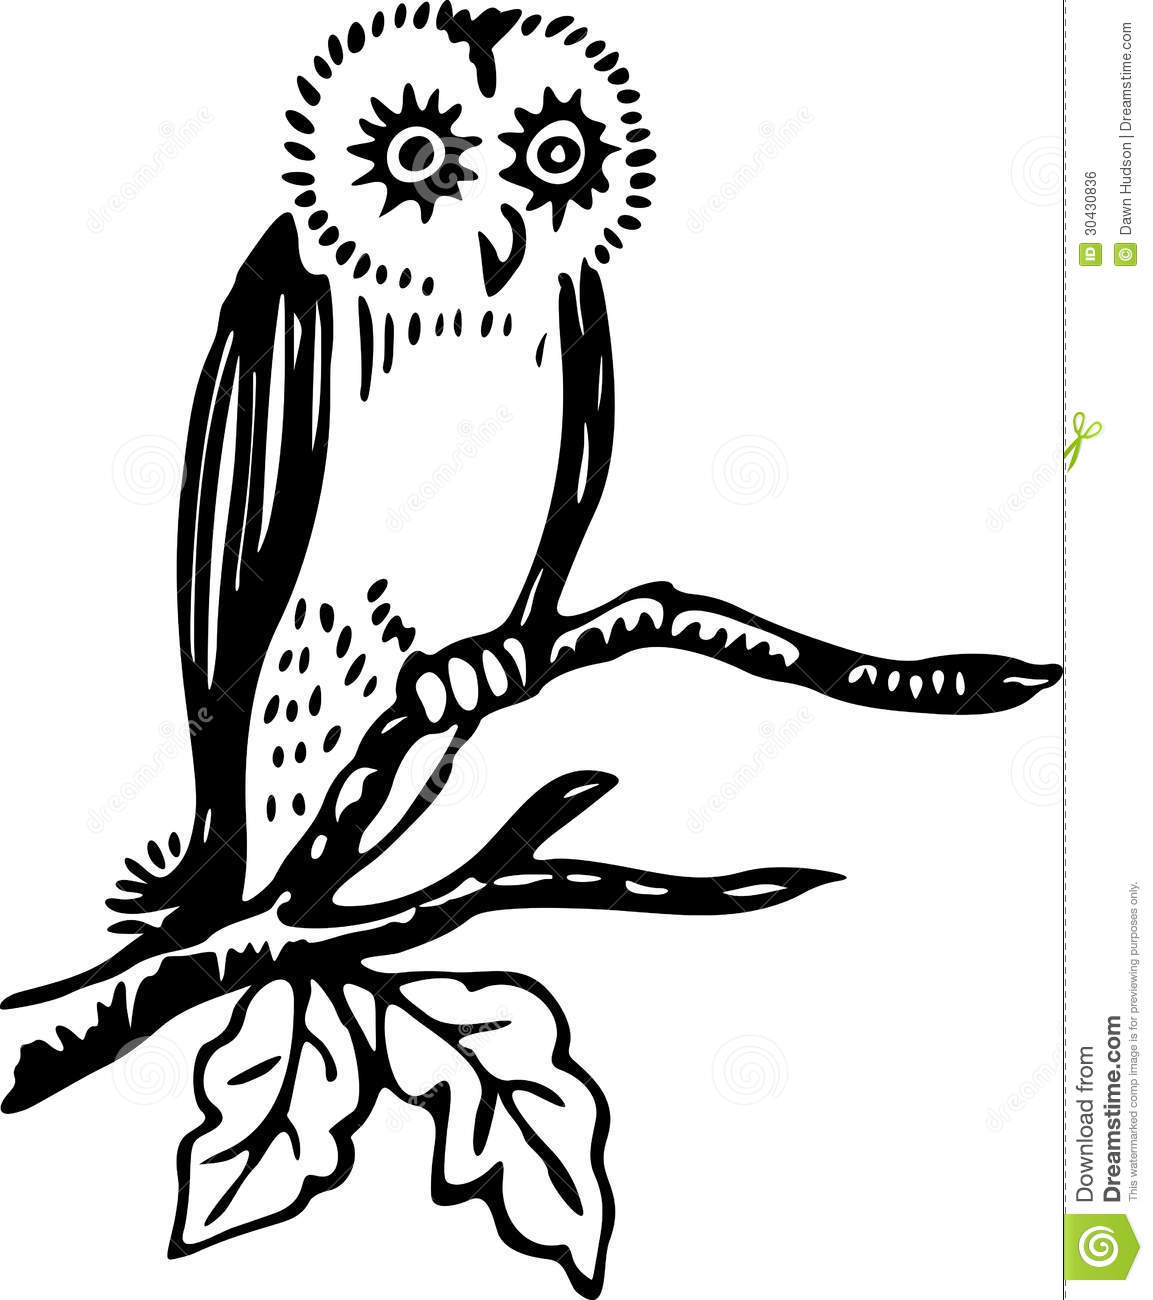 Simple Owl Black And White Drawing Simple black and white line